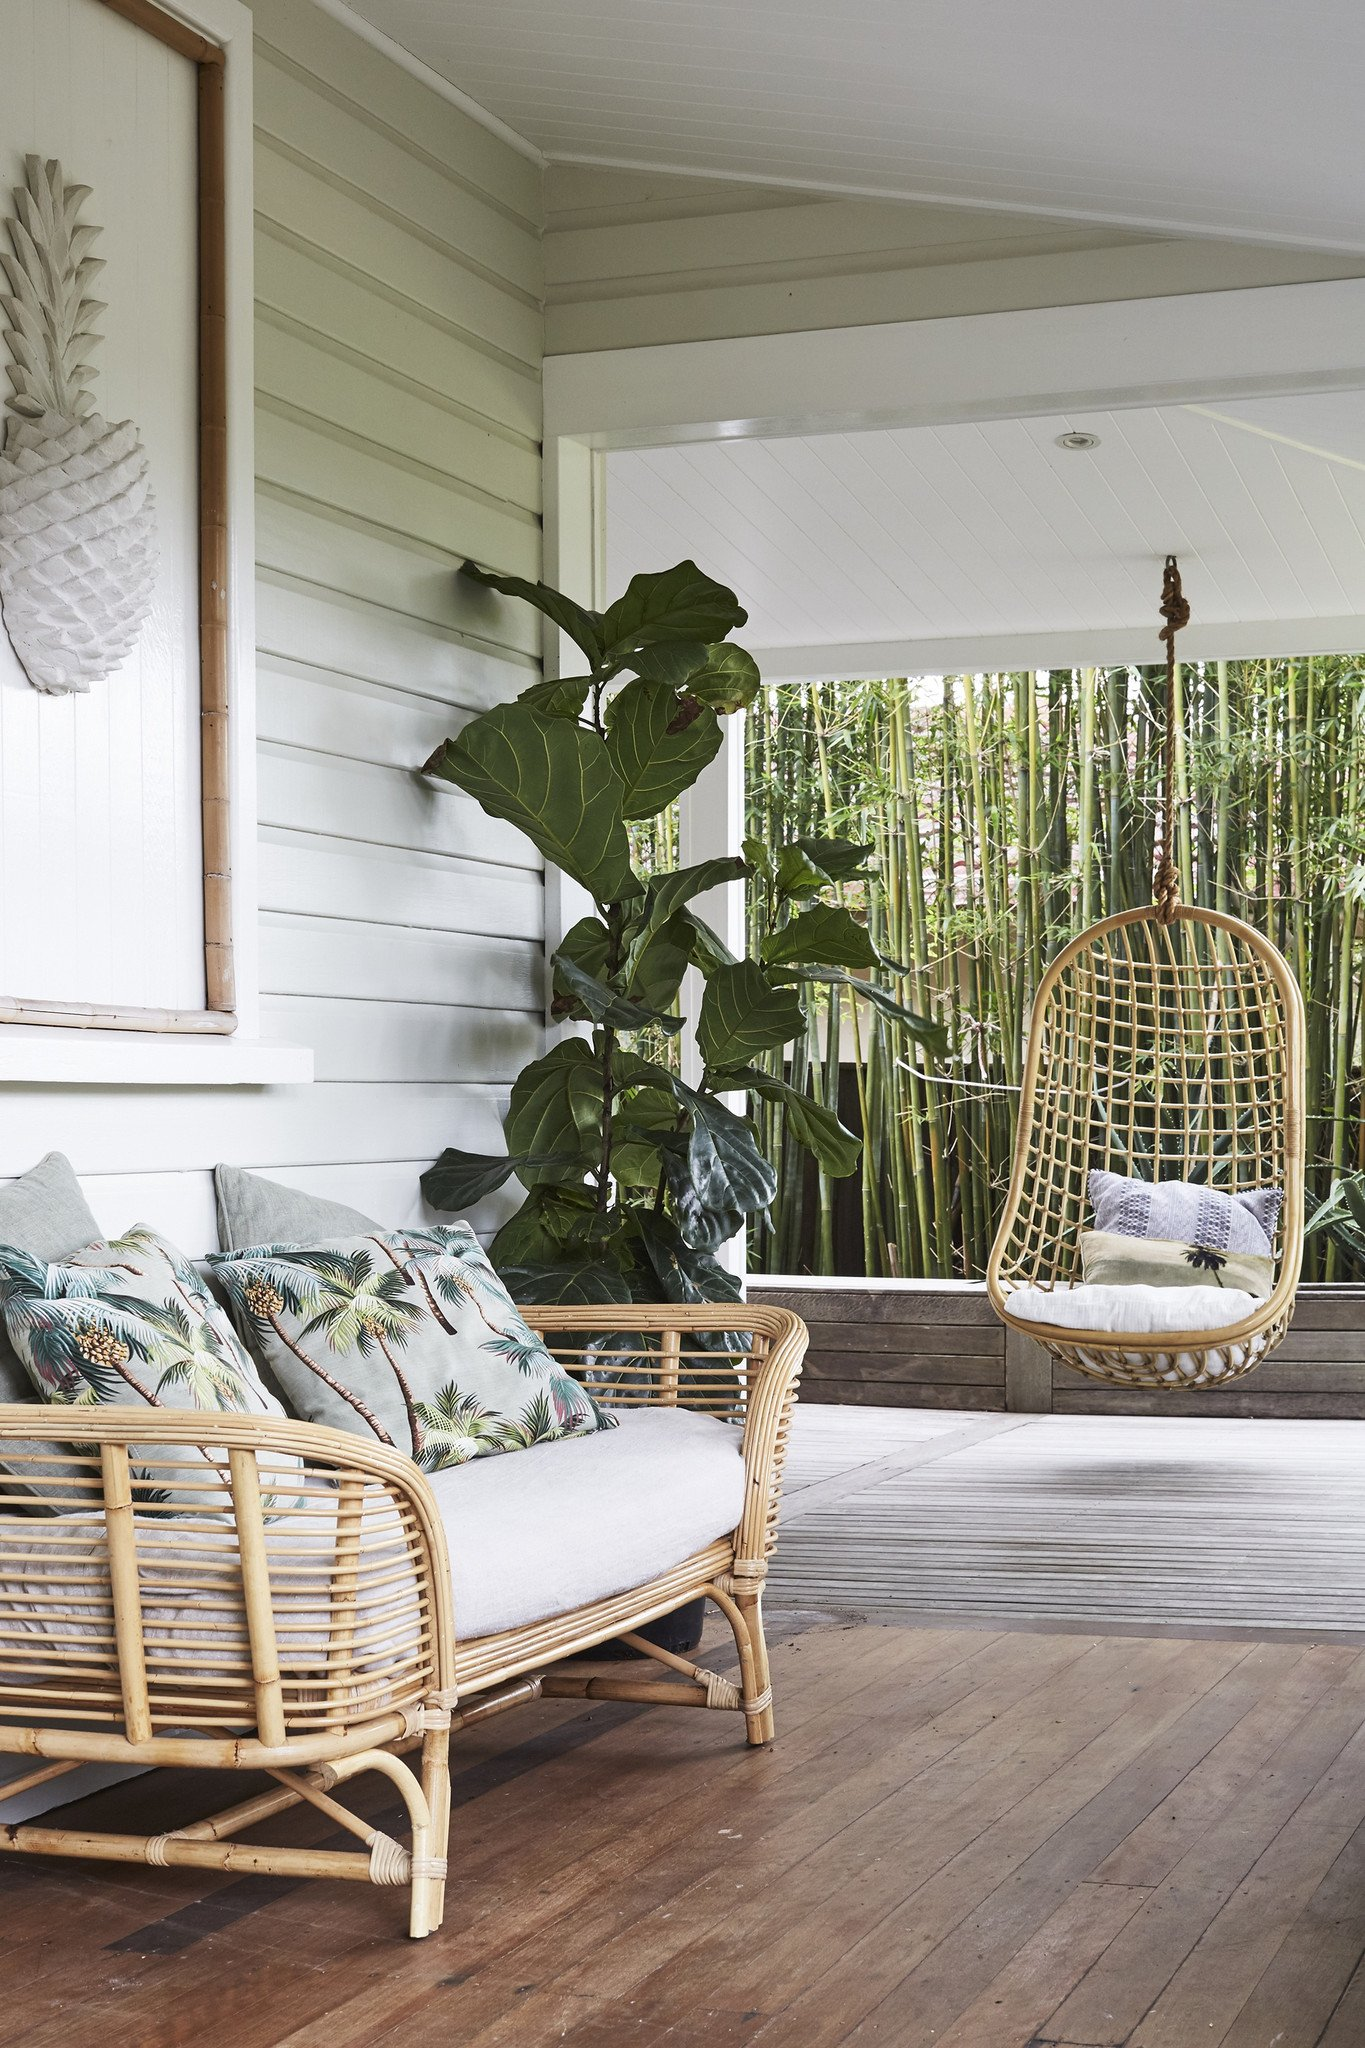 6 Outdoor Furniture Ideas That Will Make Your Terrace Unique outdoor furniture 6 Outdoor Furniture Ideas That Will Make Your Terrace One of a Kind Top 10 Outdoor Furniture Ideas That Will Make Your Terrace Unique 2